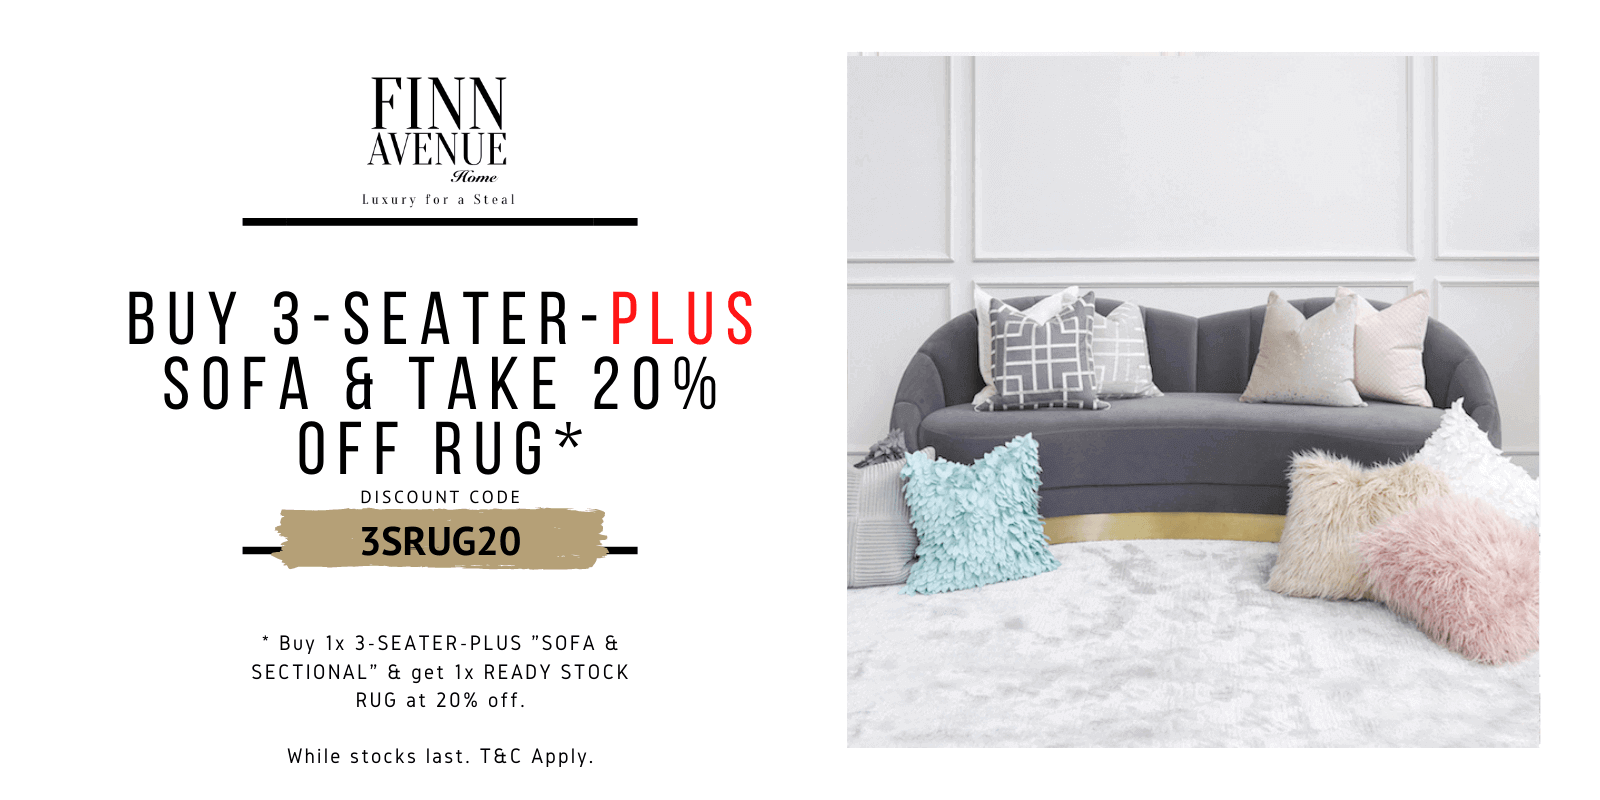 Year End Sale - Buy 3-seater-plus sofa get additional 20% off luxury rug